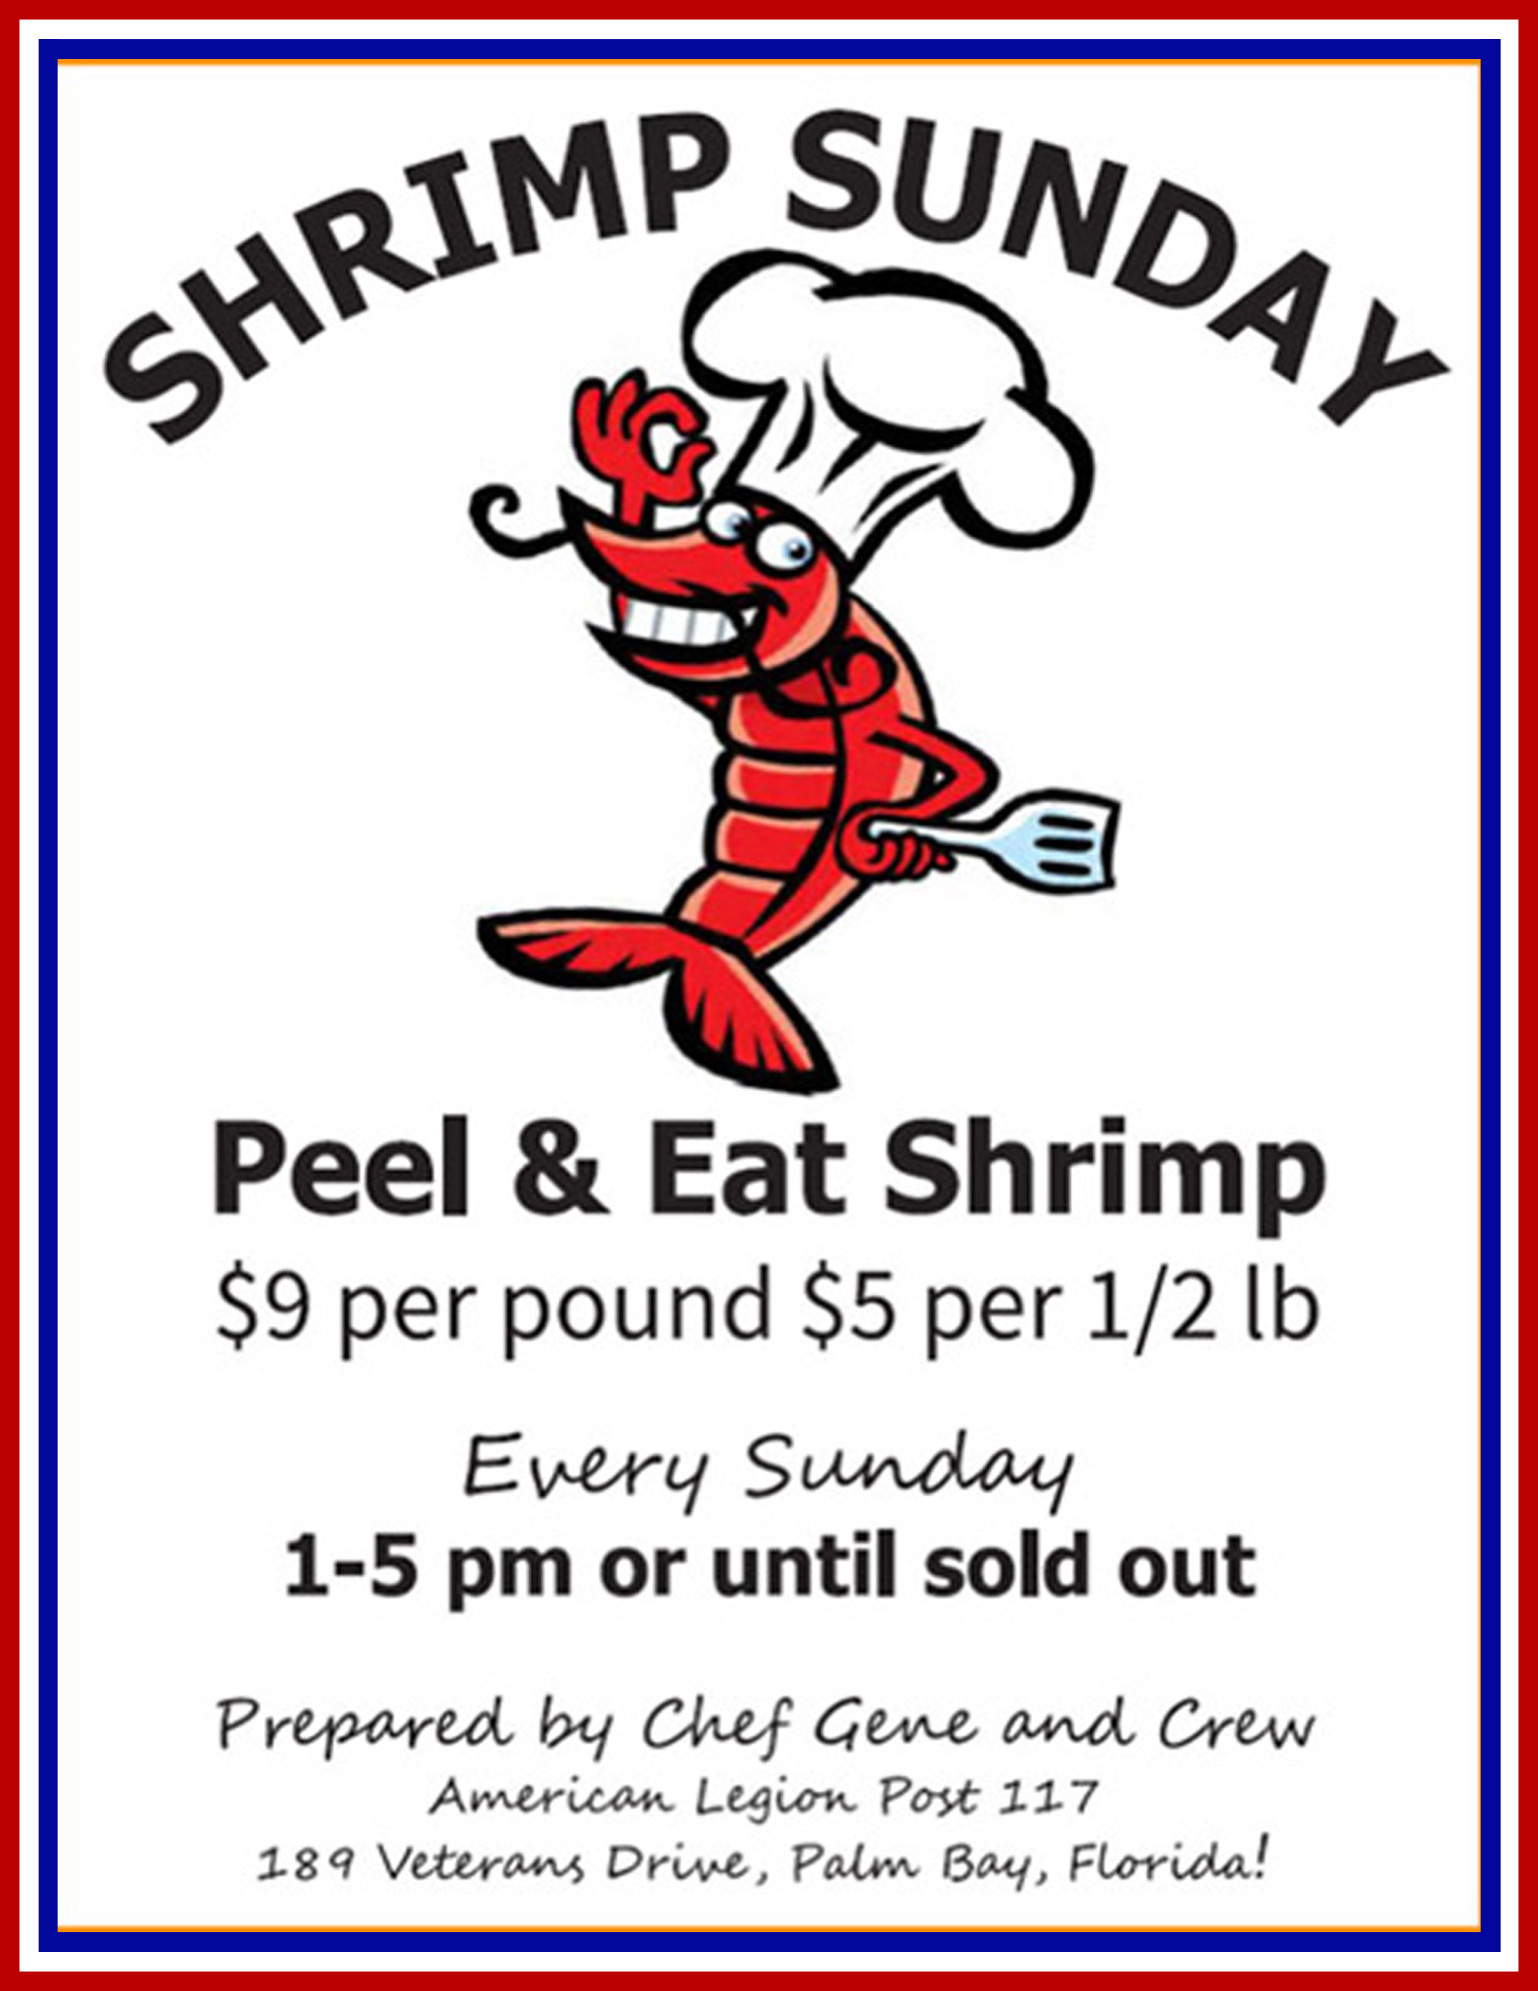 Shrimp-Sunday